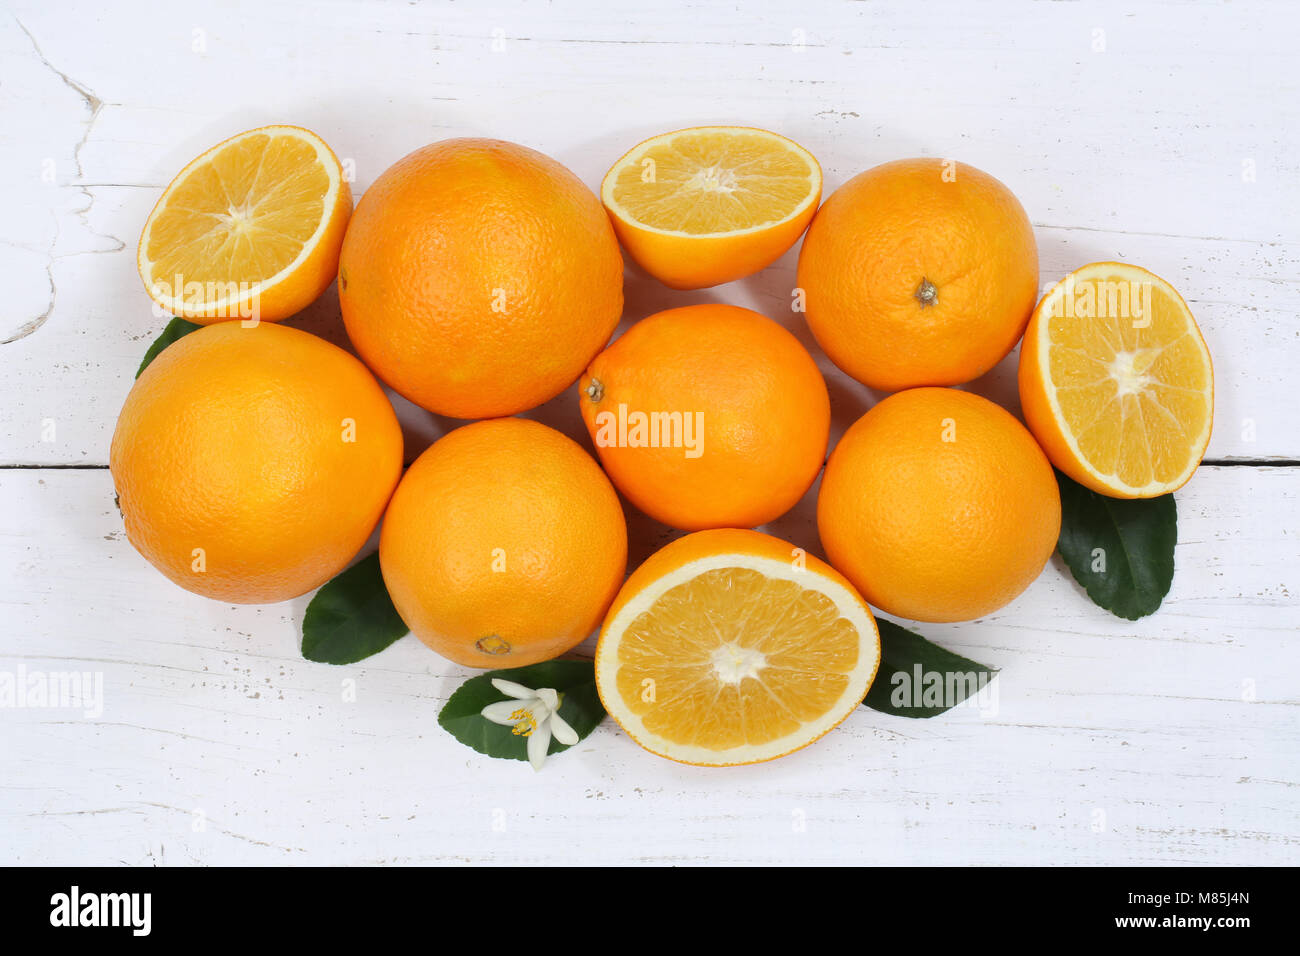 Oranges orange fruits top view from above - Stock Image